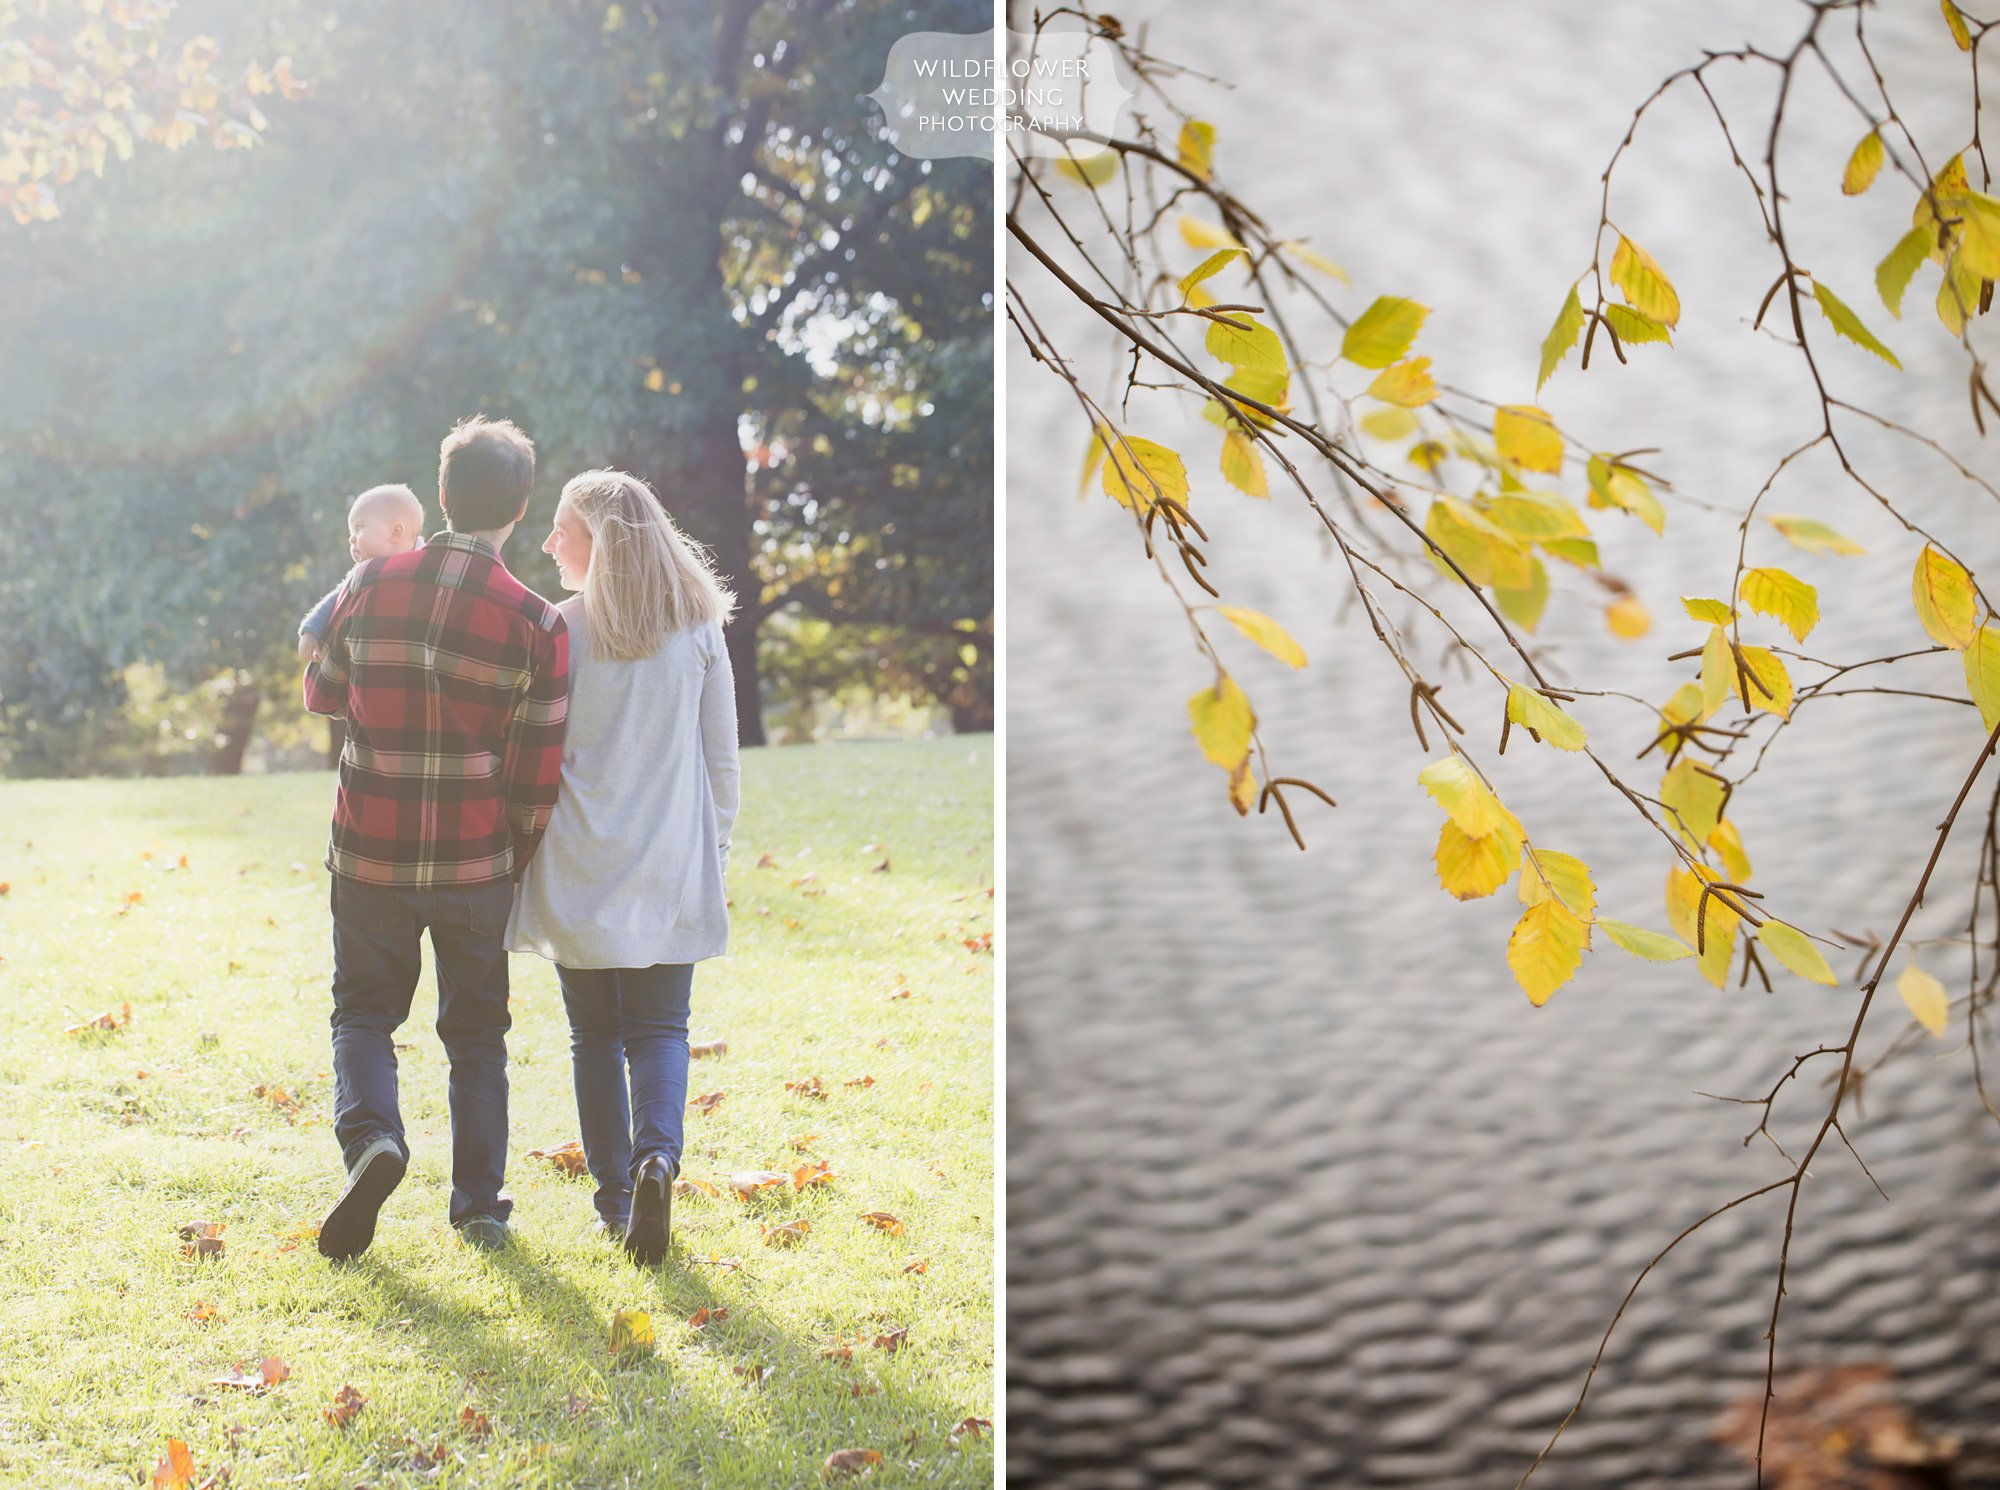 A family walks through the park in KC, Missouri for their natural family photography session.